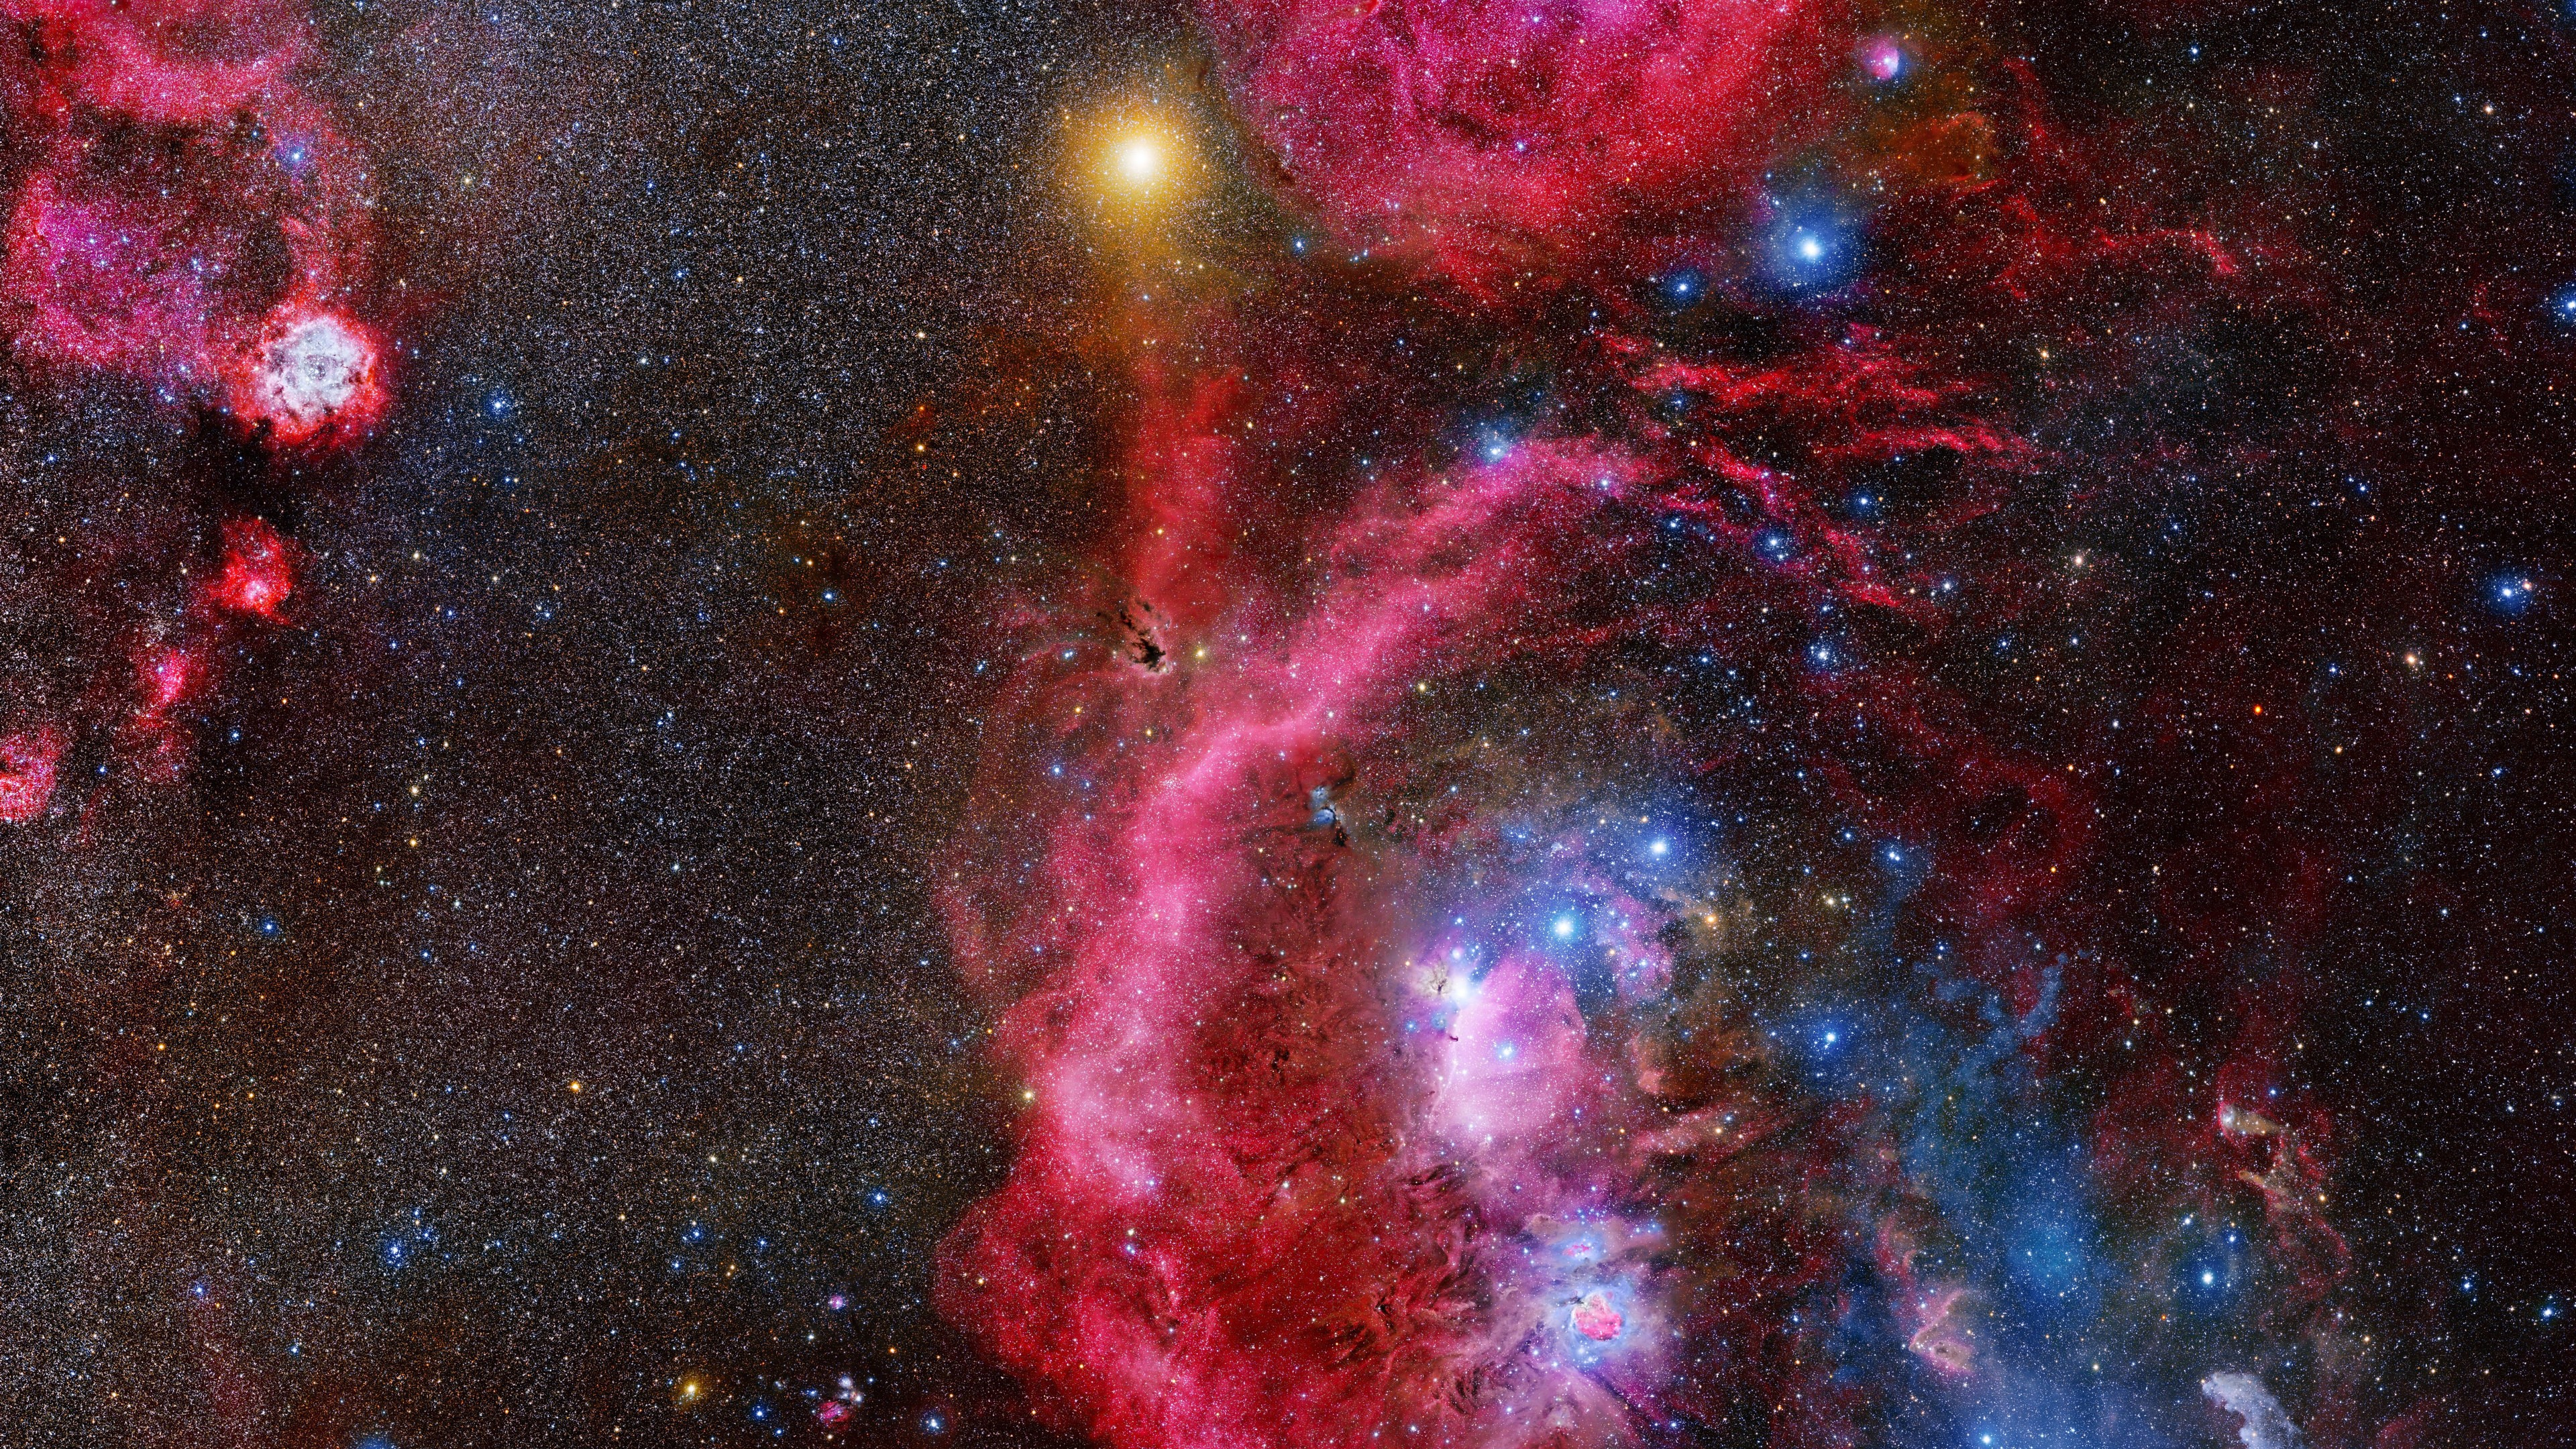 Wallpaper Galaxy and Orion constalation